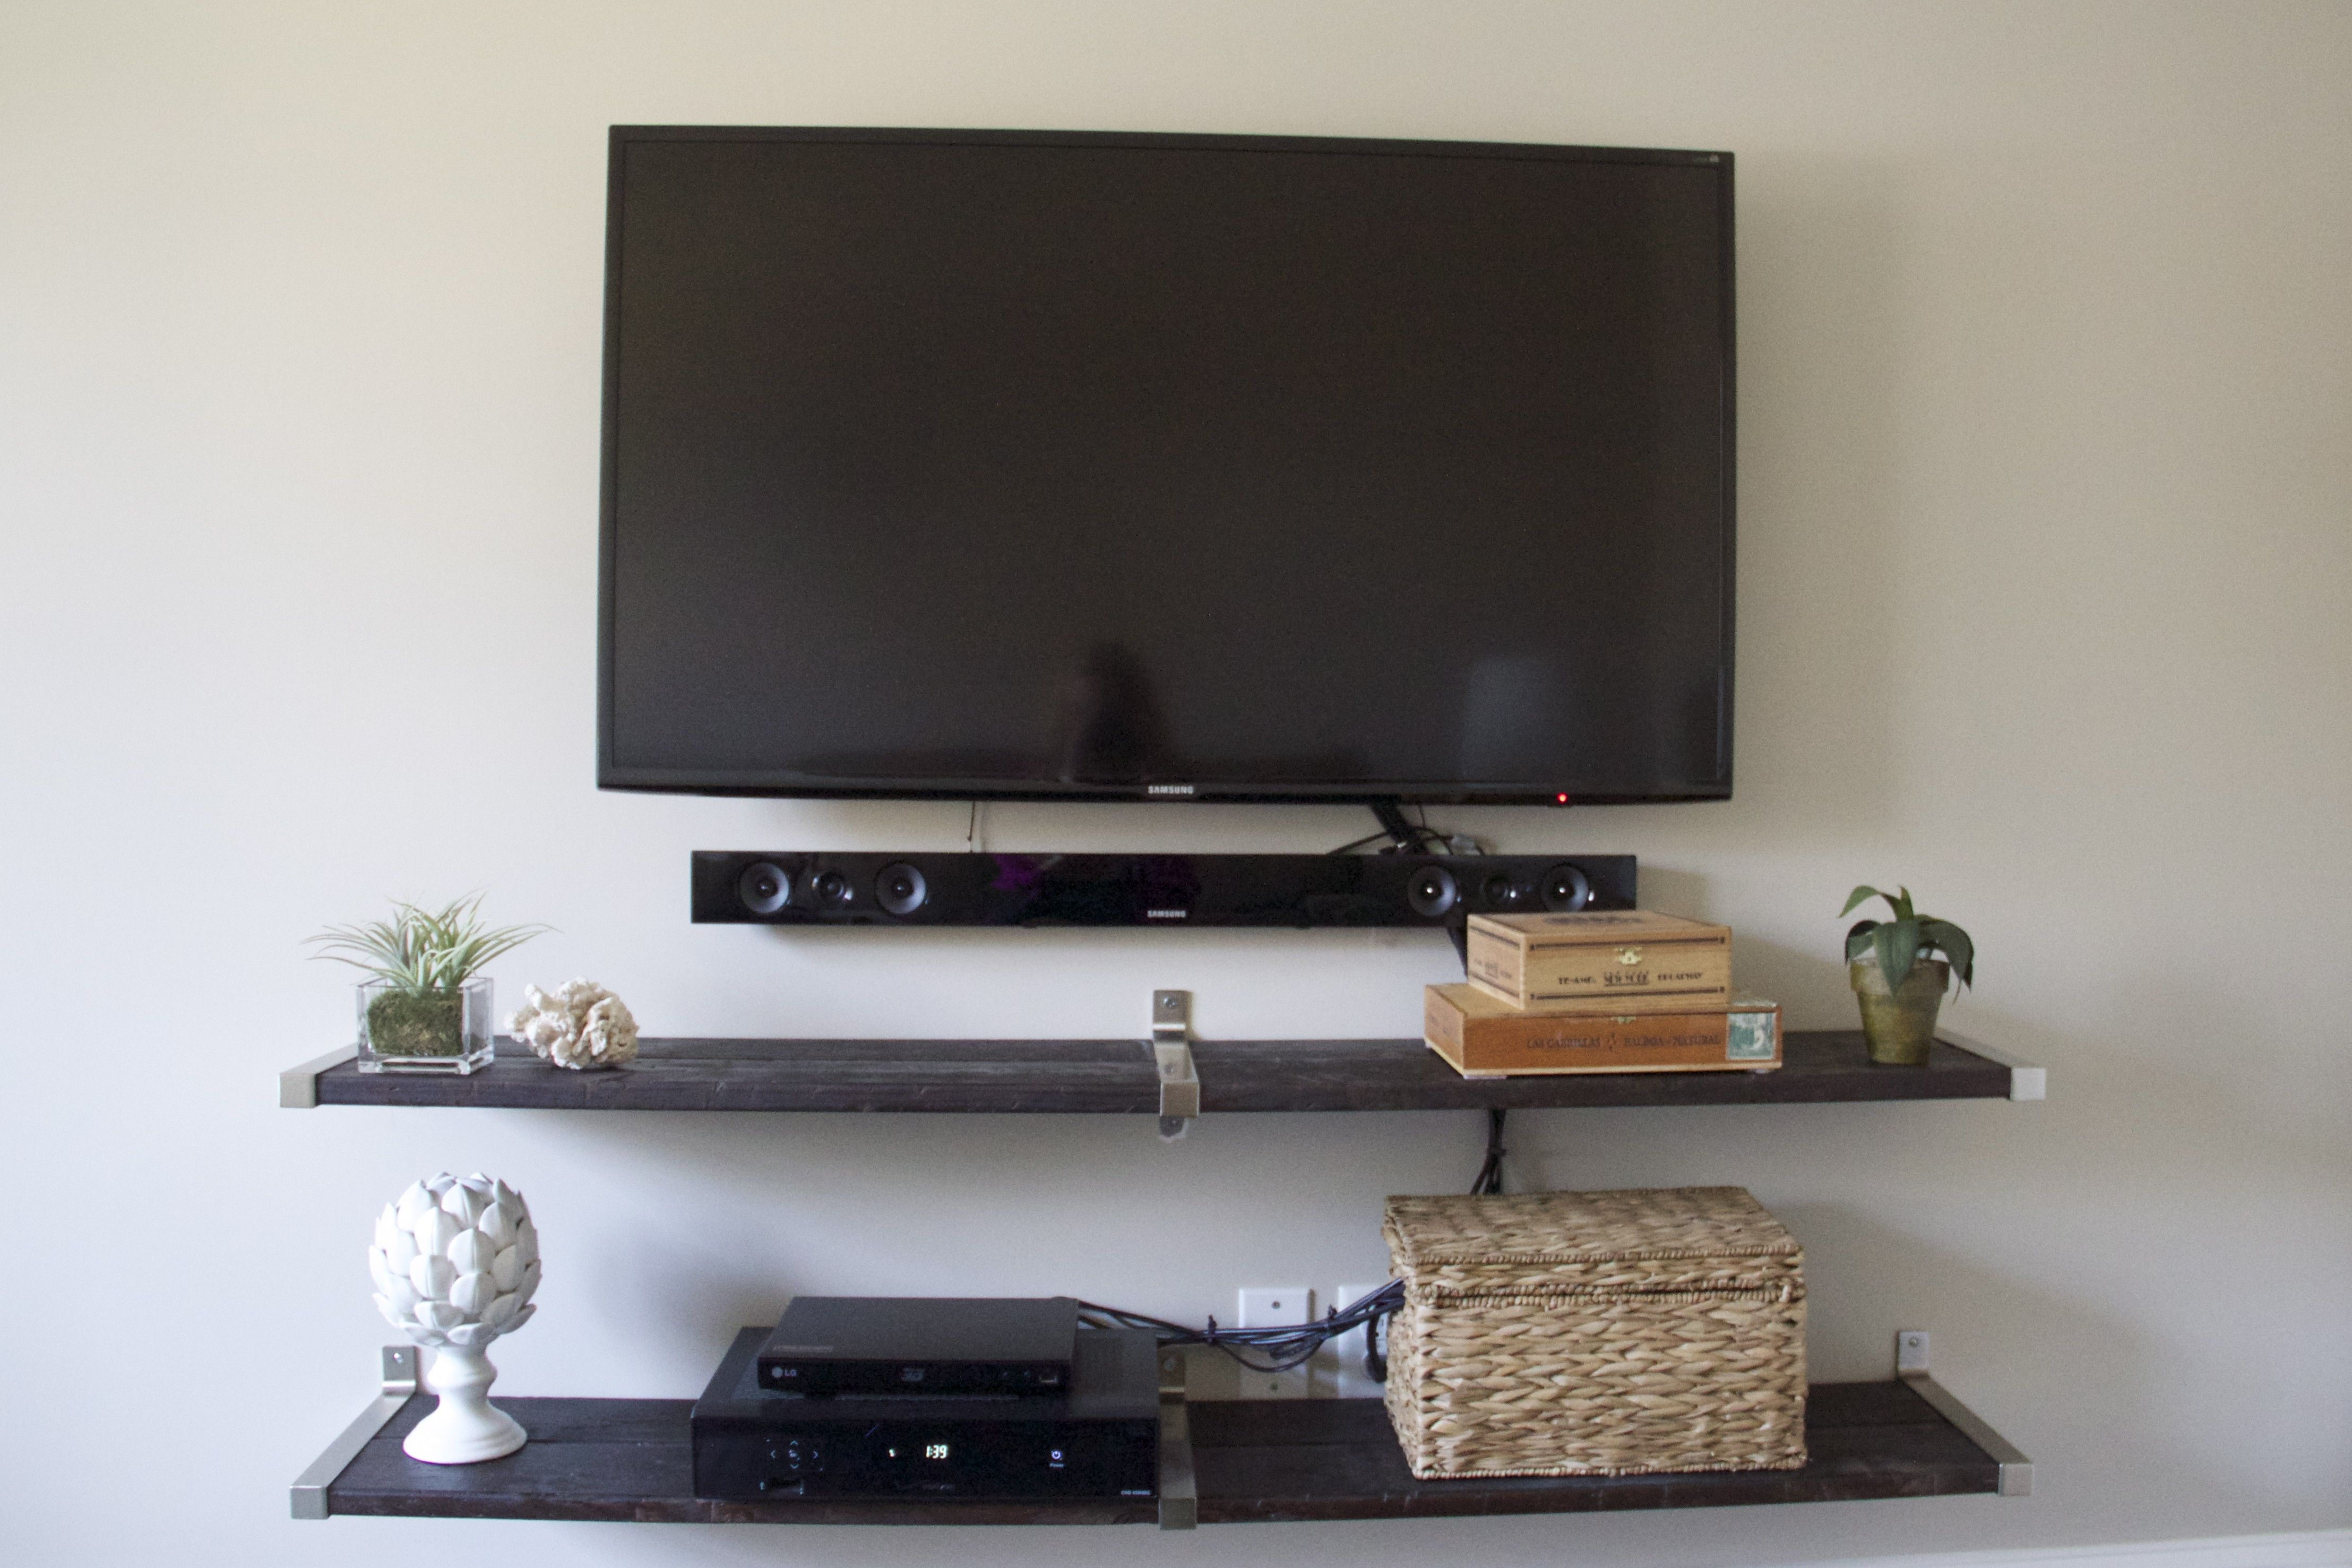 furniture 2 shelf under wall mounted tv design idea for collectible